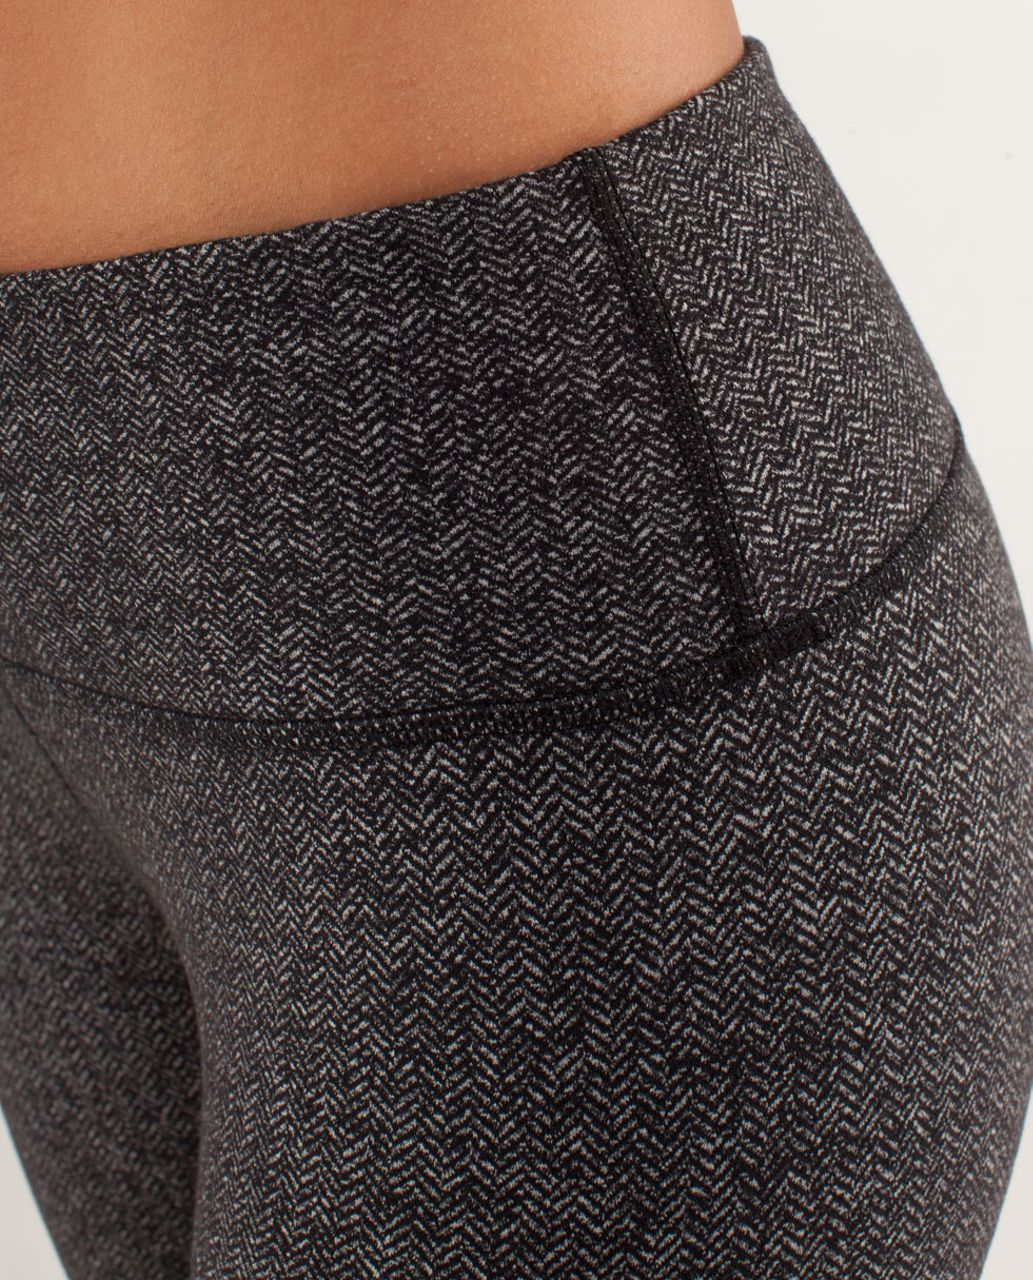 Lululemon Wunder Under Crop - Herringbone Black / Black